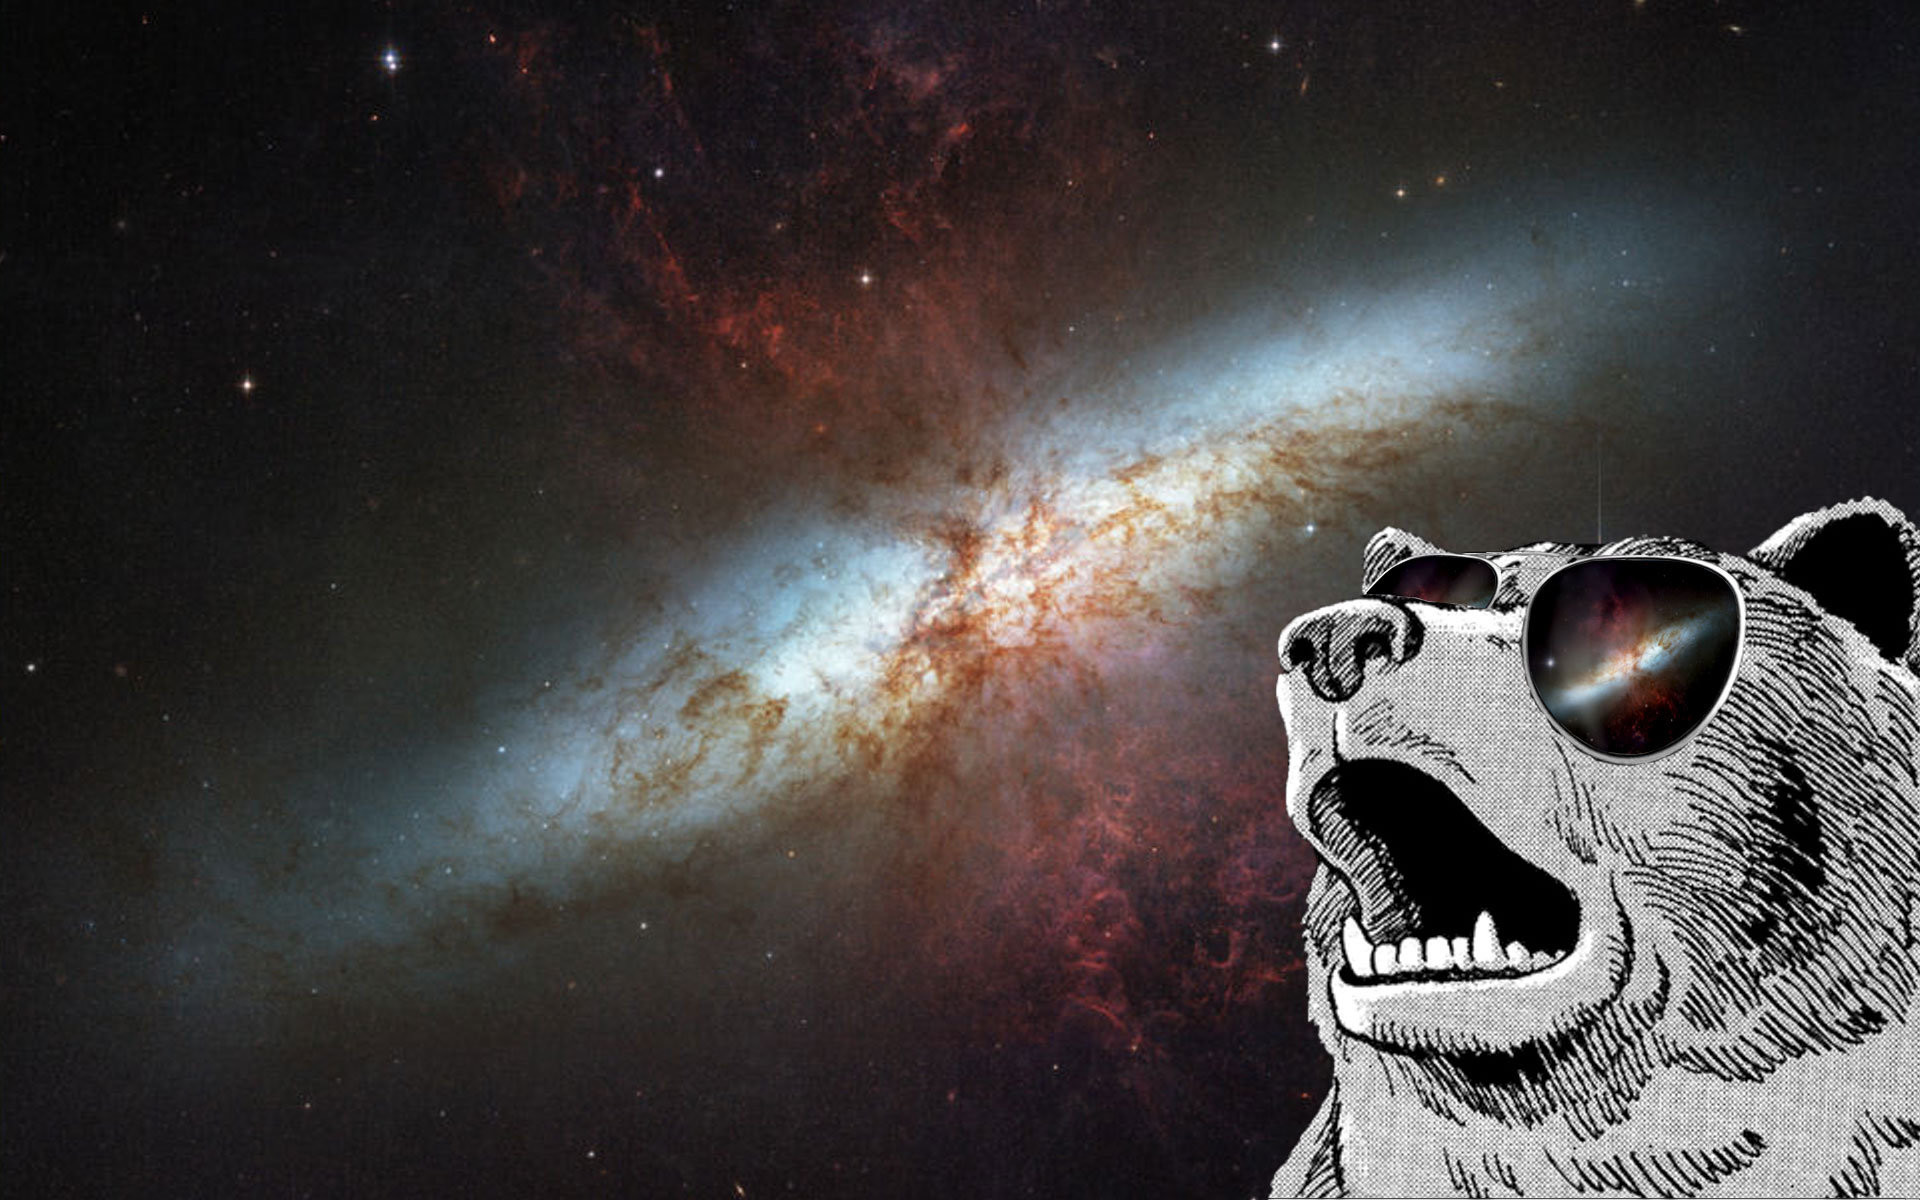 dank meme wallpapers space doge grizzly hd outer bears memes definition 1080 animals desktop background resolution epic 1920 px rare